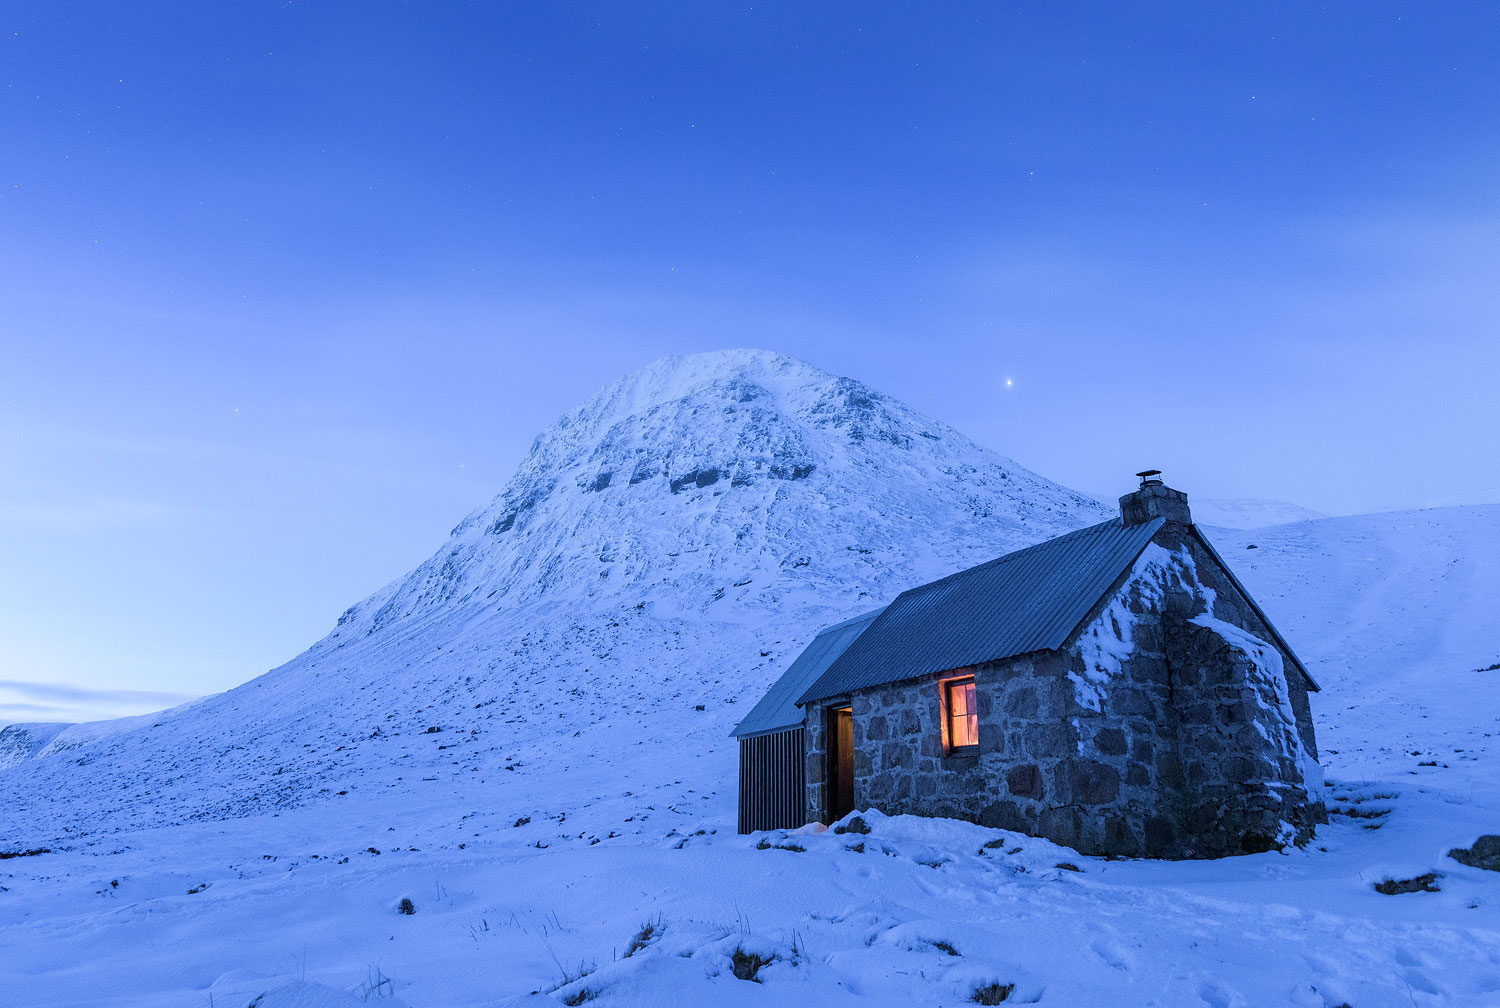 Scottish bothy in winter